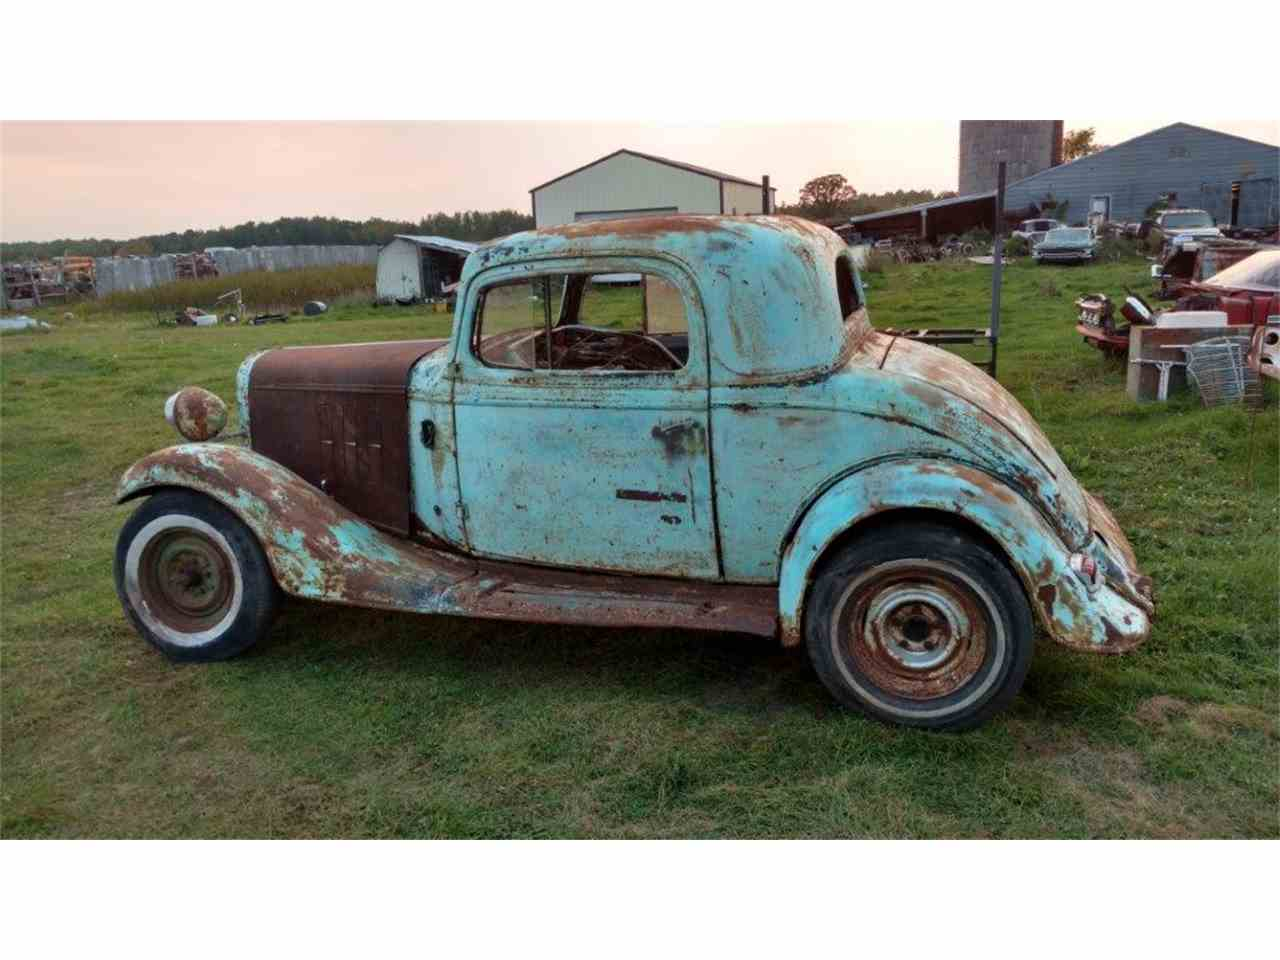 Texas Classic Project Cars For Sale